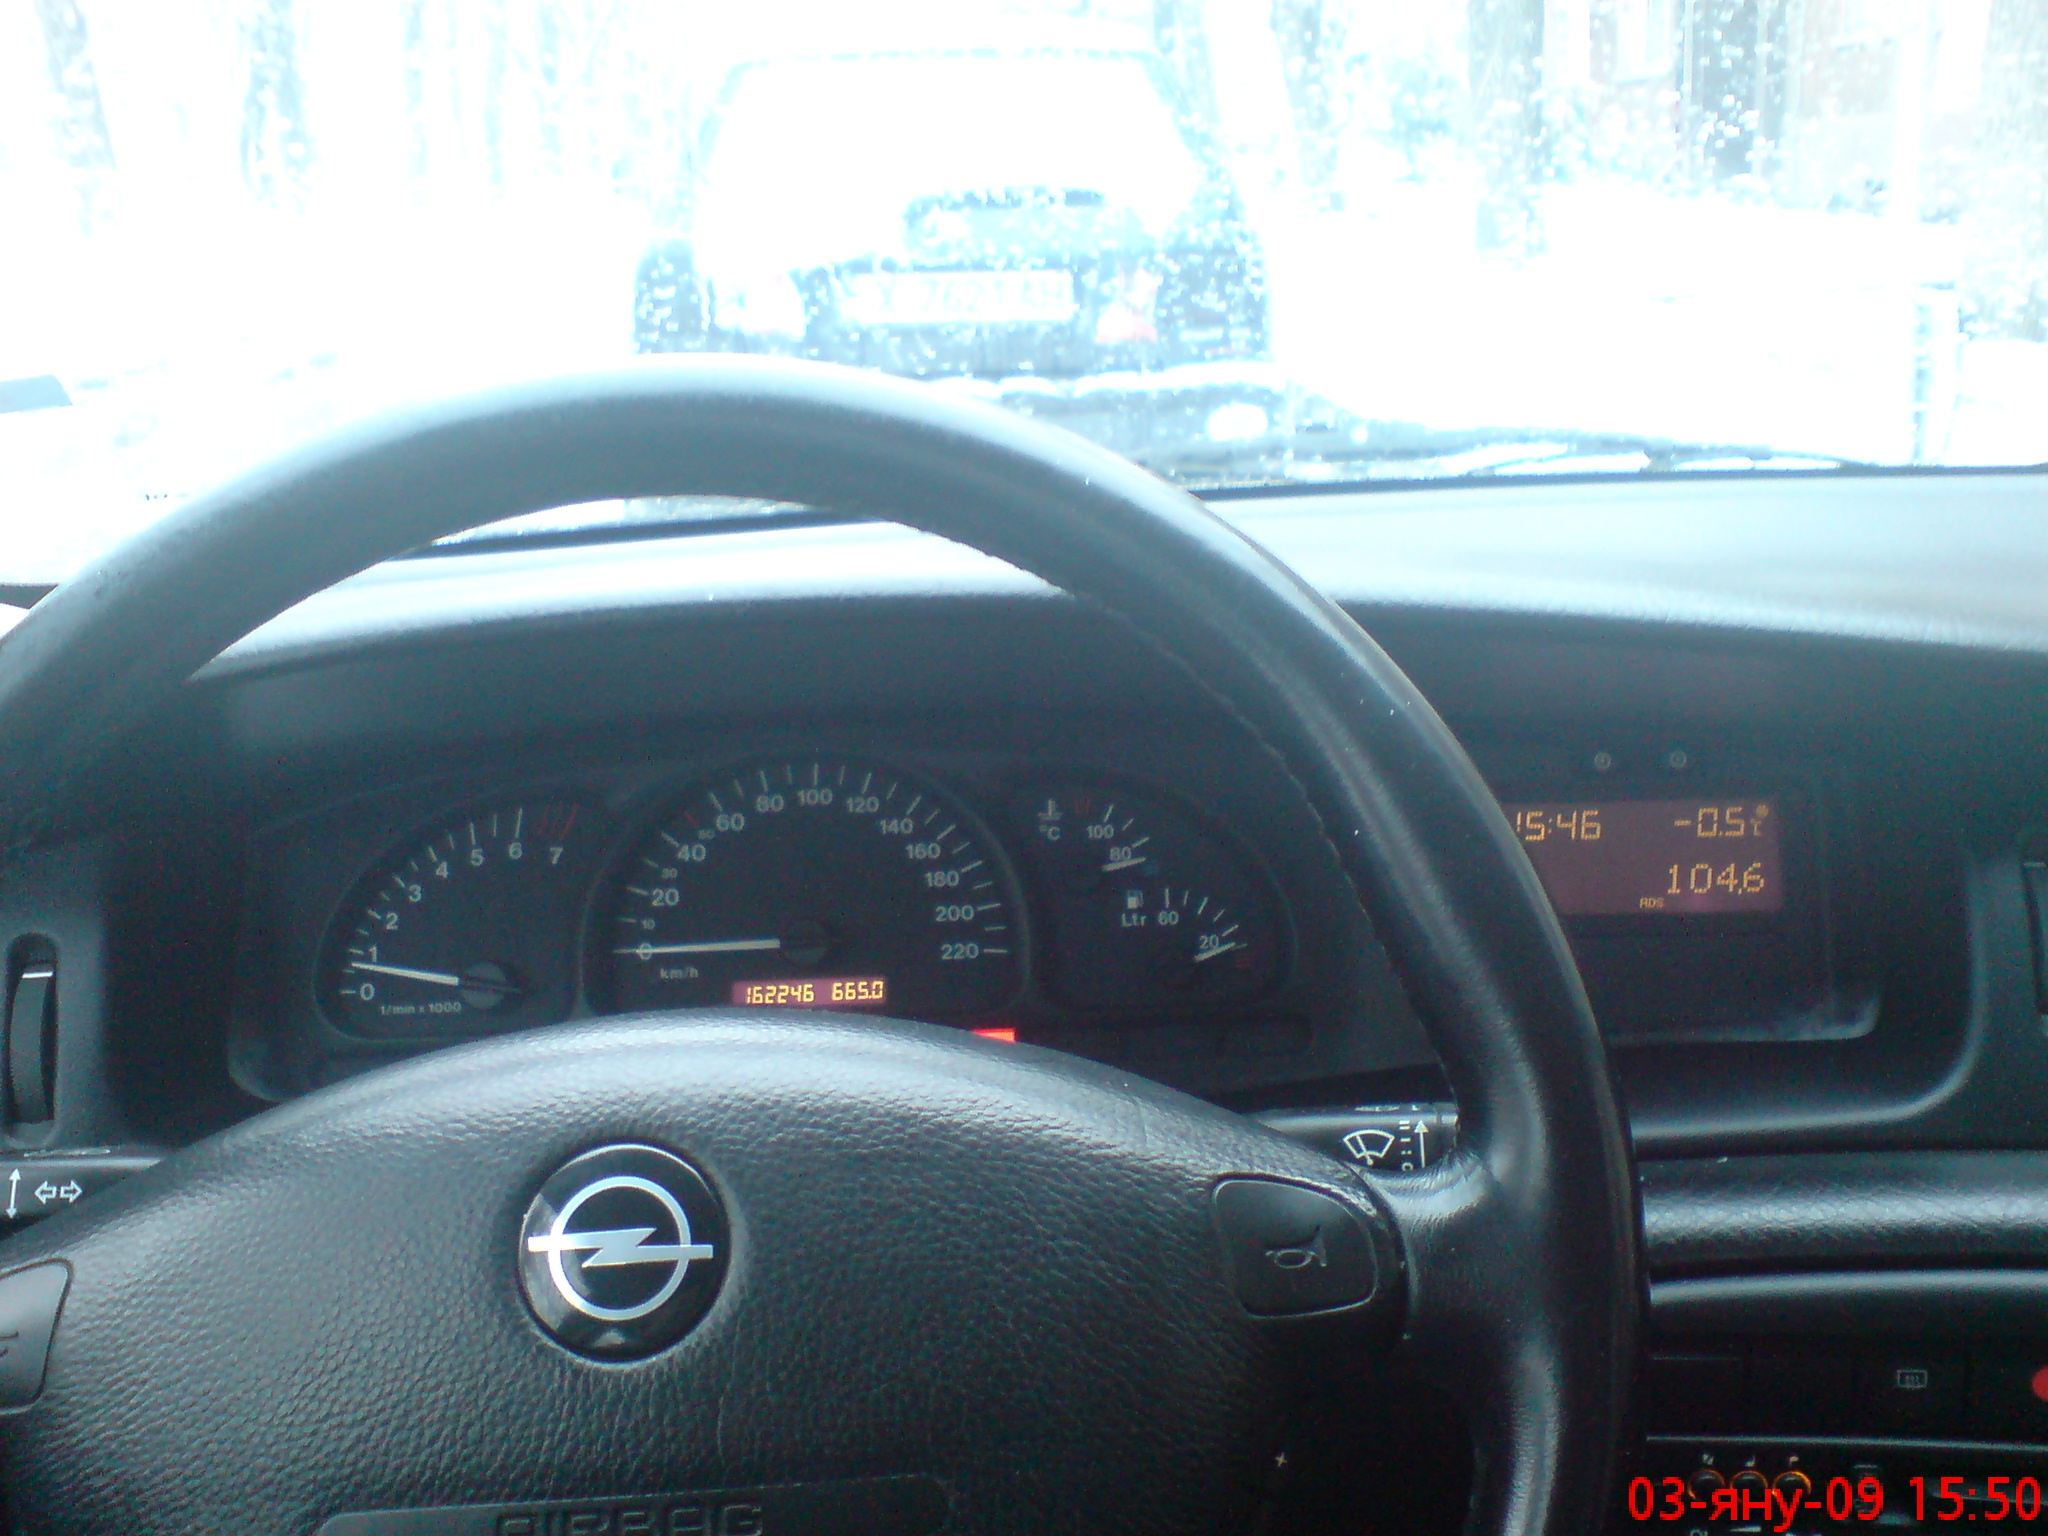 OPEL VECTRA 1.6 interior